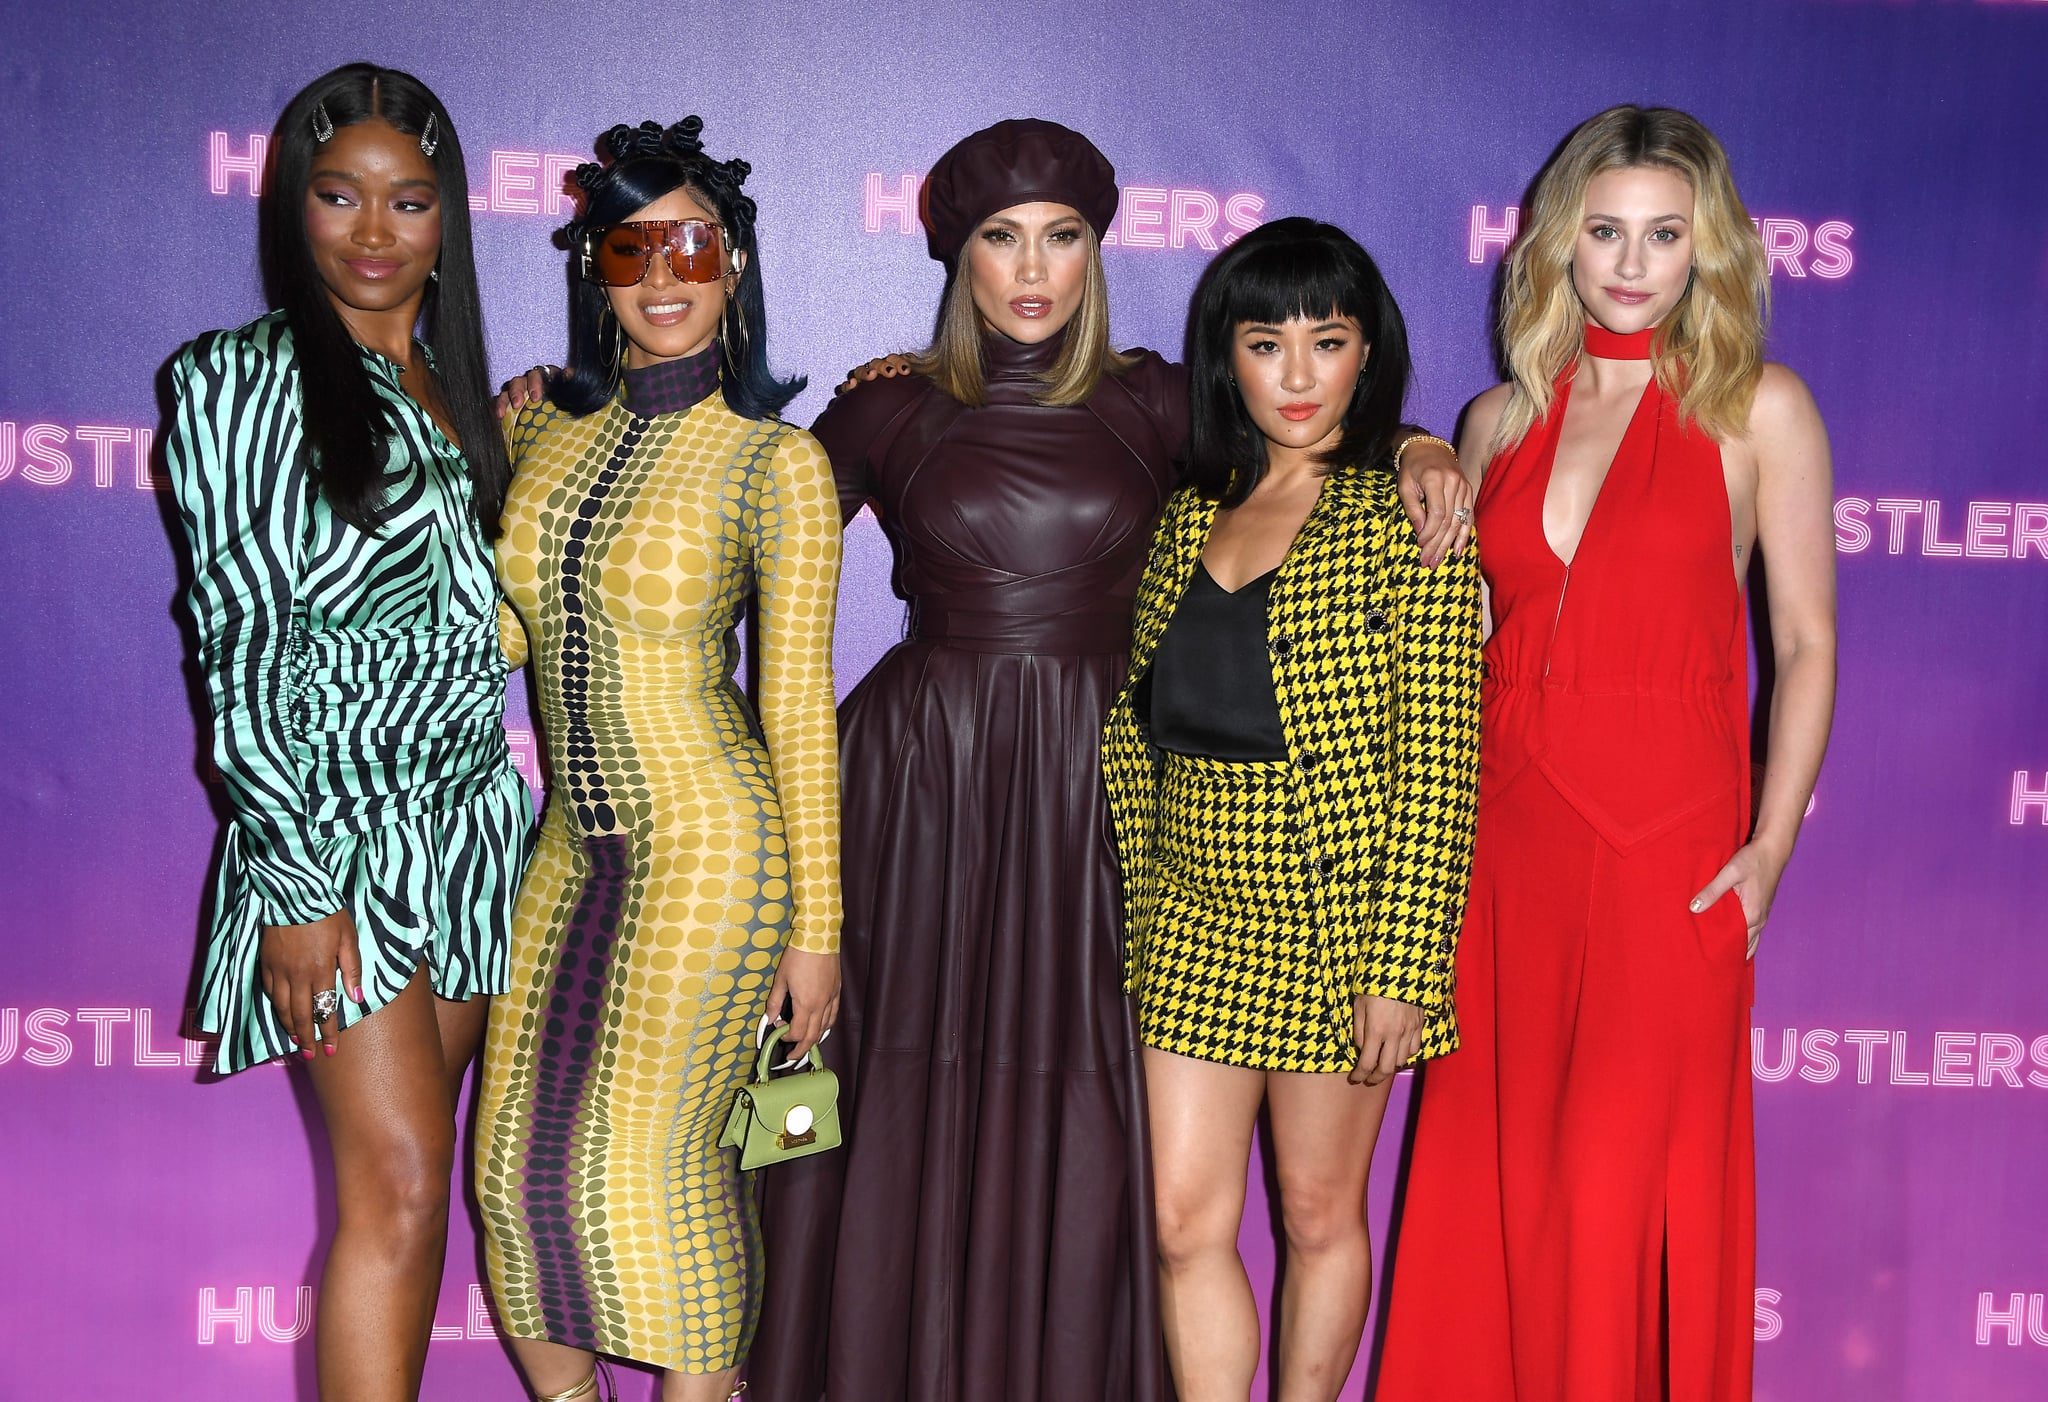 LOS ANGELES, CALIFORNIA - AUGUST 25: Keke Palmer, Cardi B, Jennifer Lopez, Constance Wu, and Lili Reinhart  pose at the Photo Call For STX Entertainment's